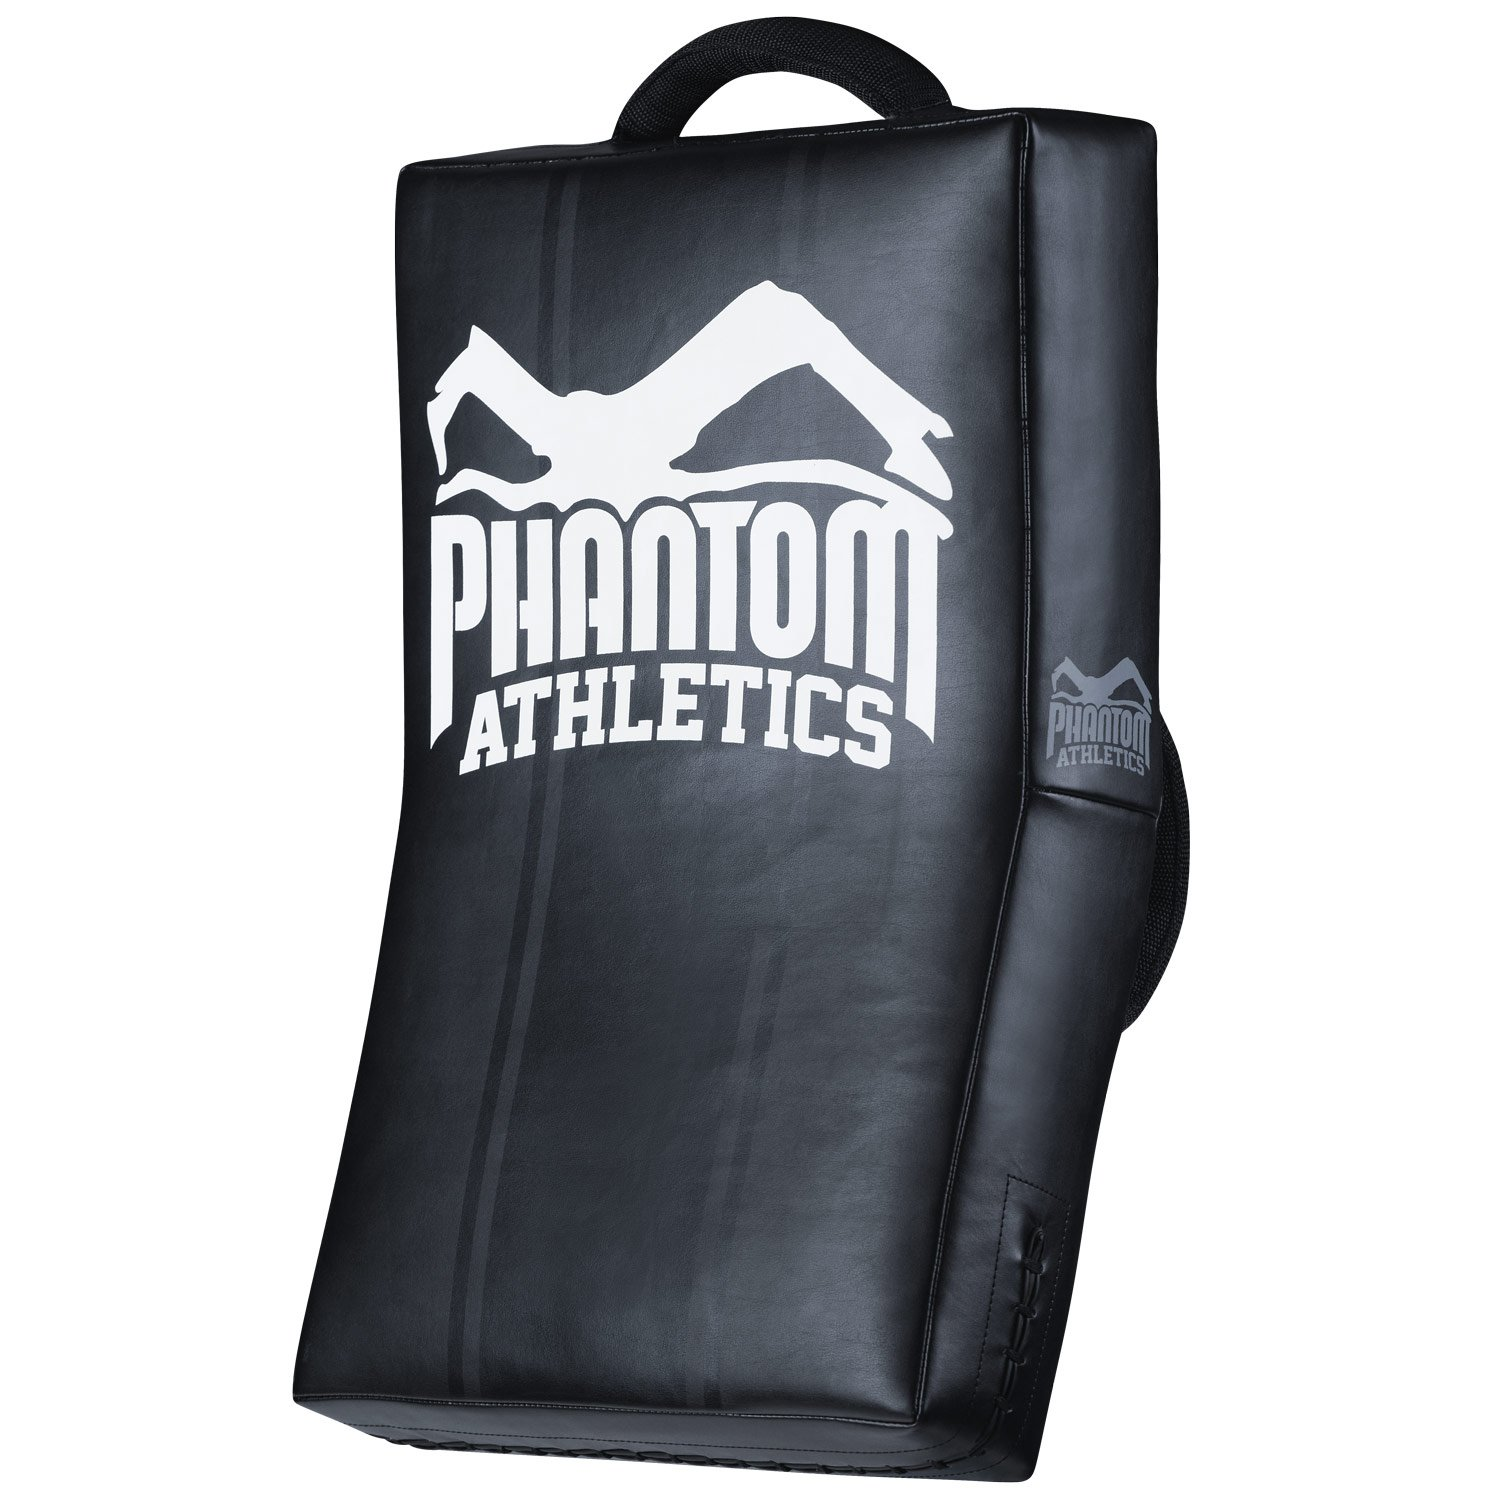 Bouclier de frappe Phantom Athletics